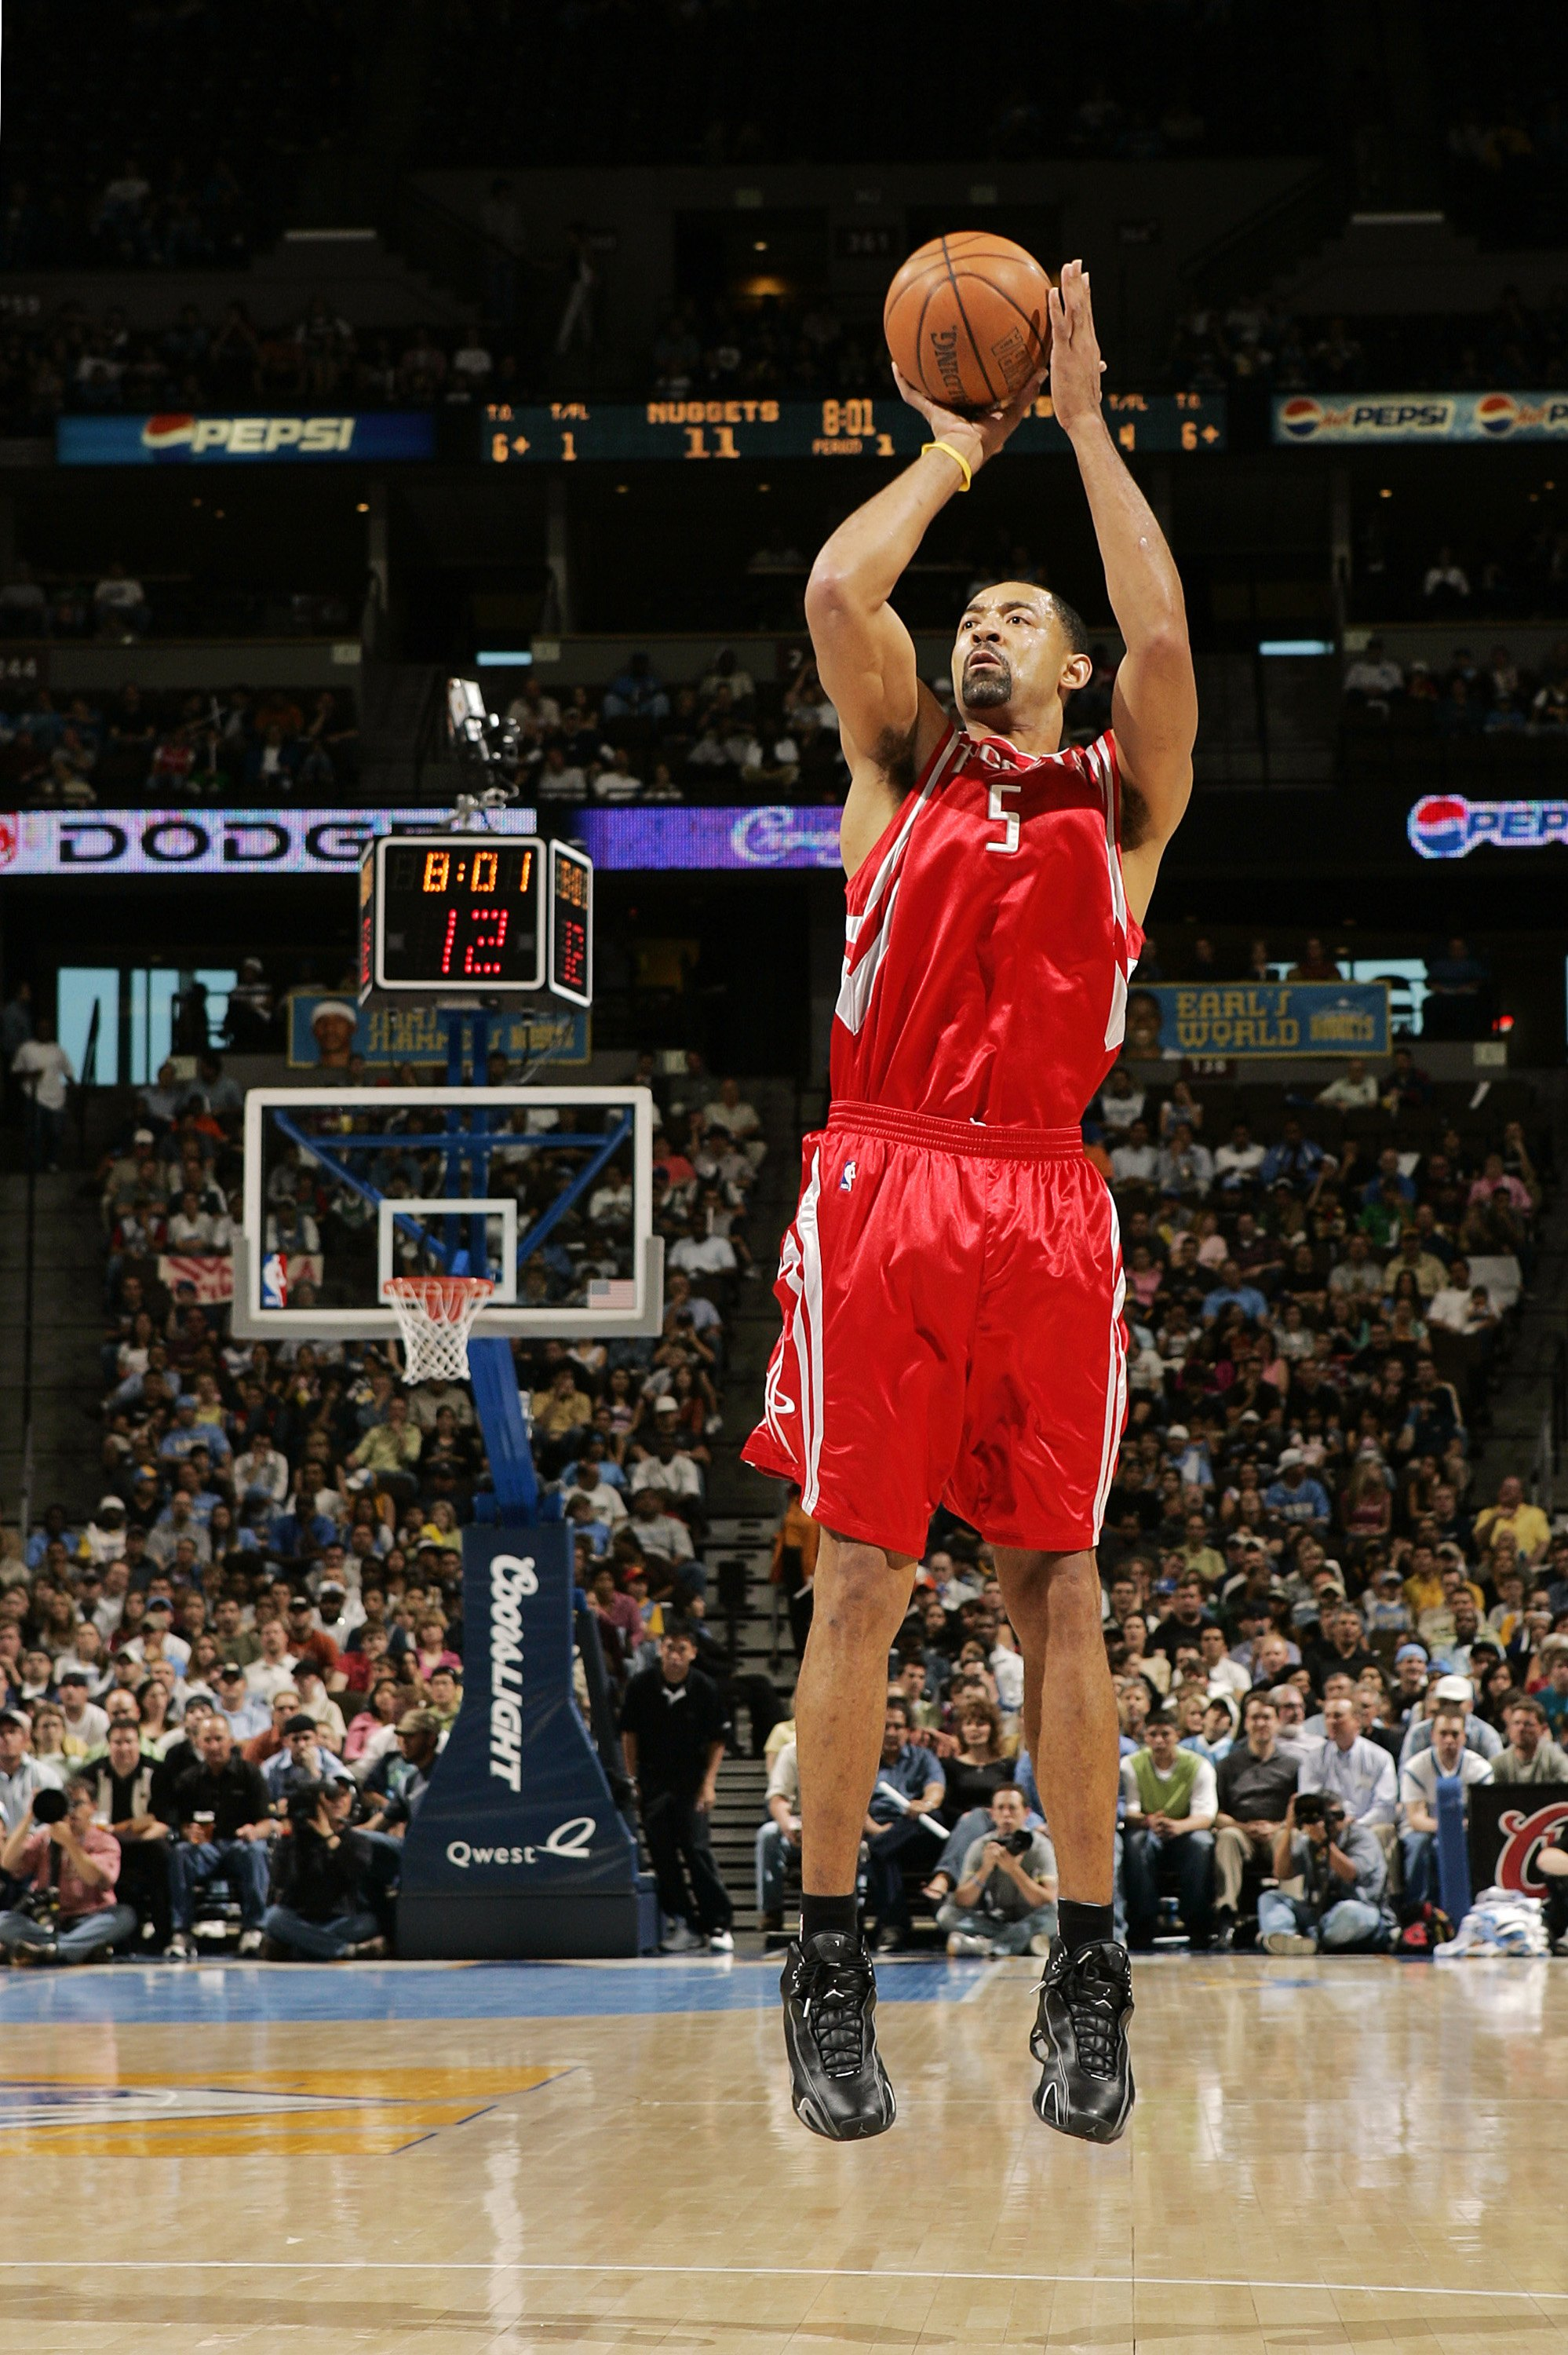 DENVER - APRIL 17:  Juwon Howard #5 of the Houston Rockets shoots against the Denver Nuggets in the first quarter on April 17, 2006 at the Pepsi Center in Denver, Colorado. Howard led with 31 points in the Rockets' 86-83 win.  NOTE TO USER: USER expressly